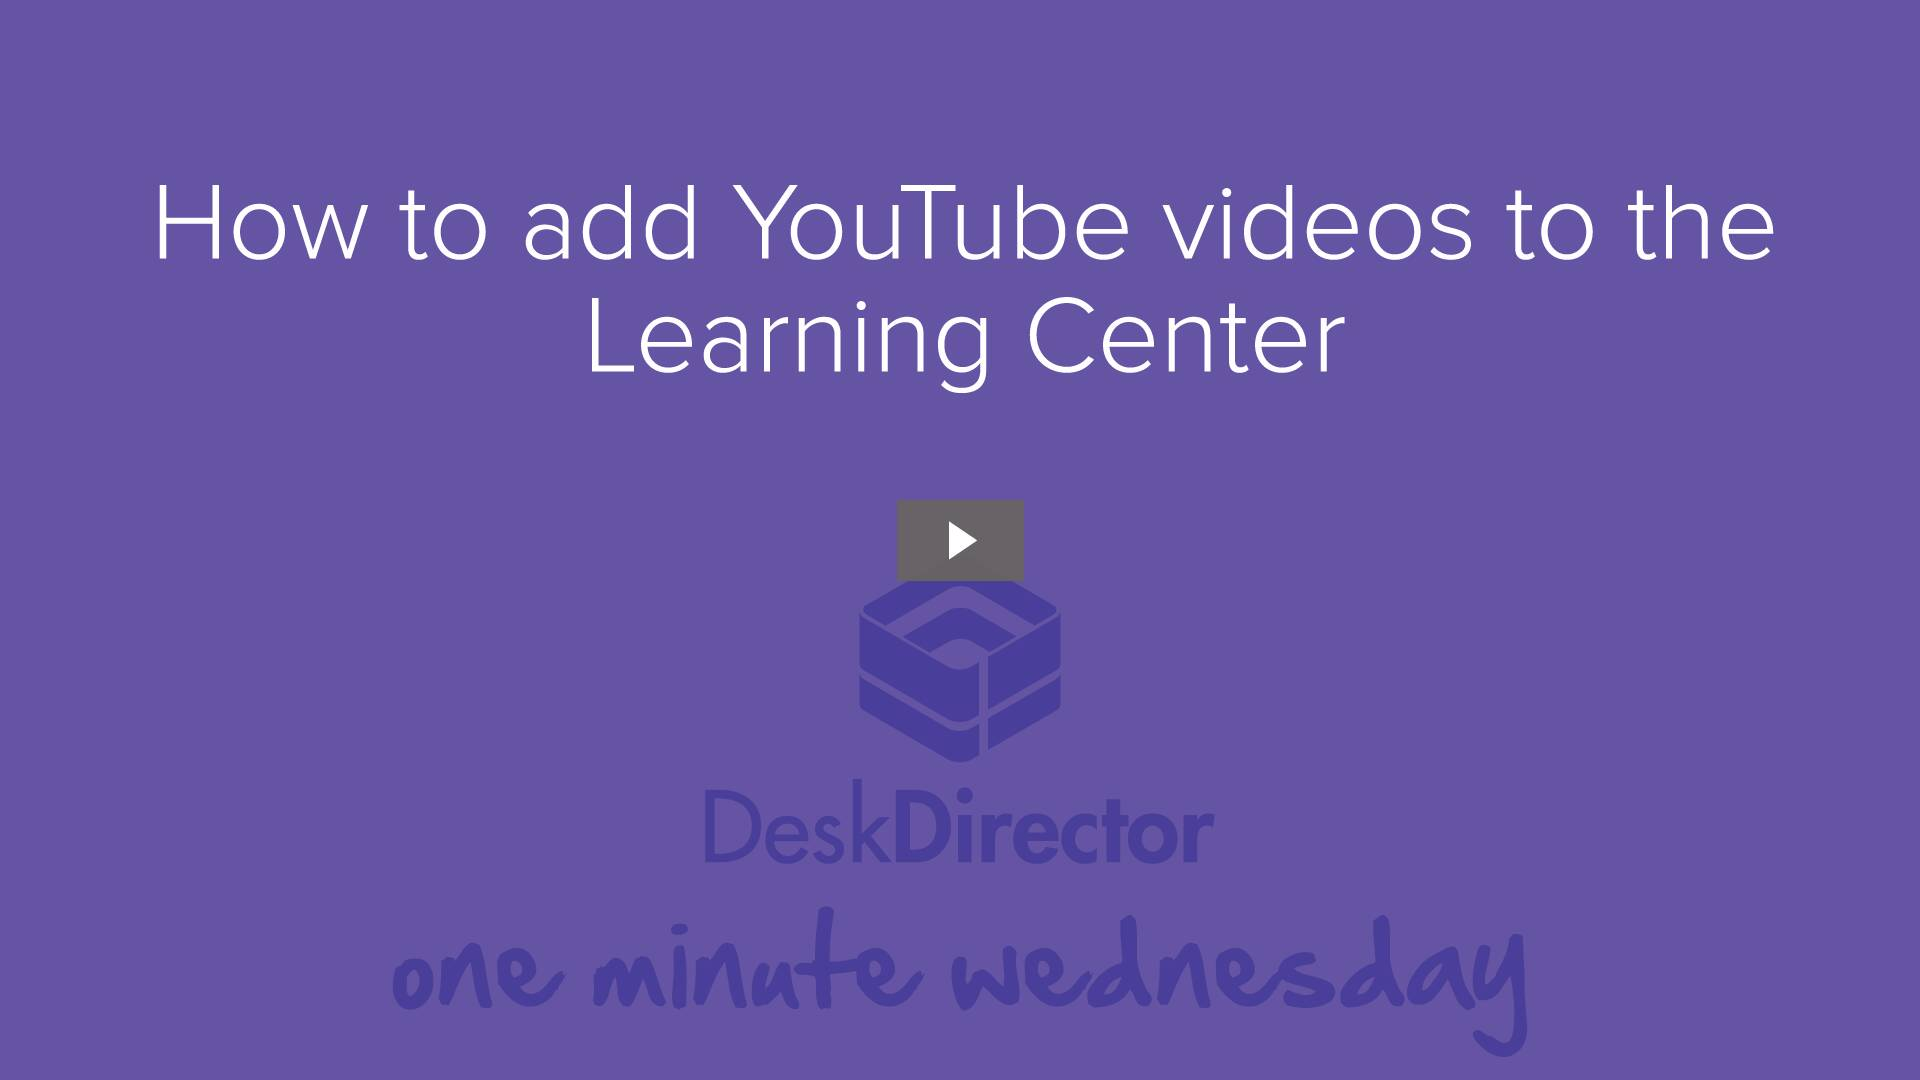 How to add YouTube videos to the Learning Center